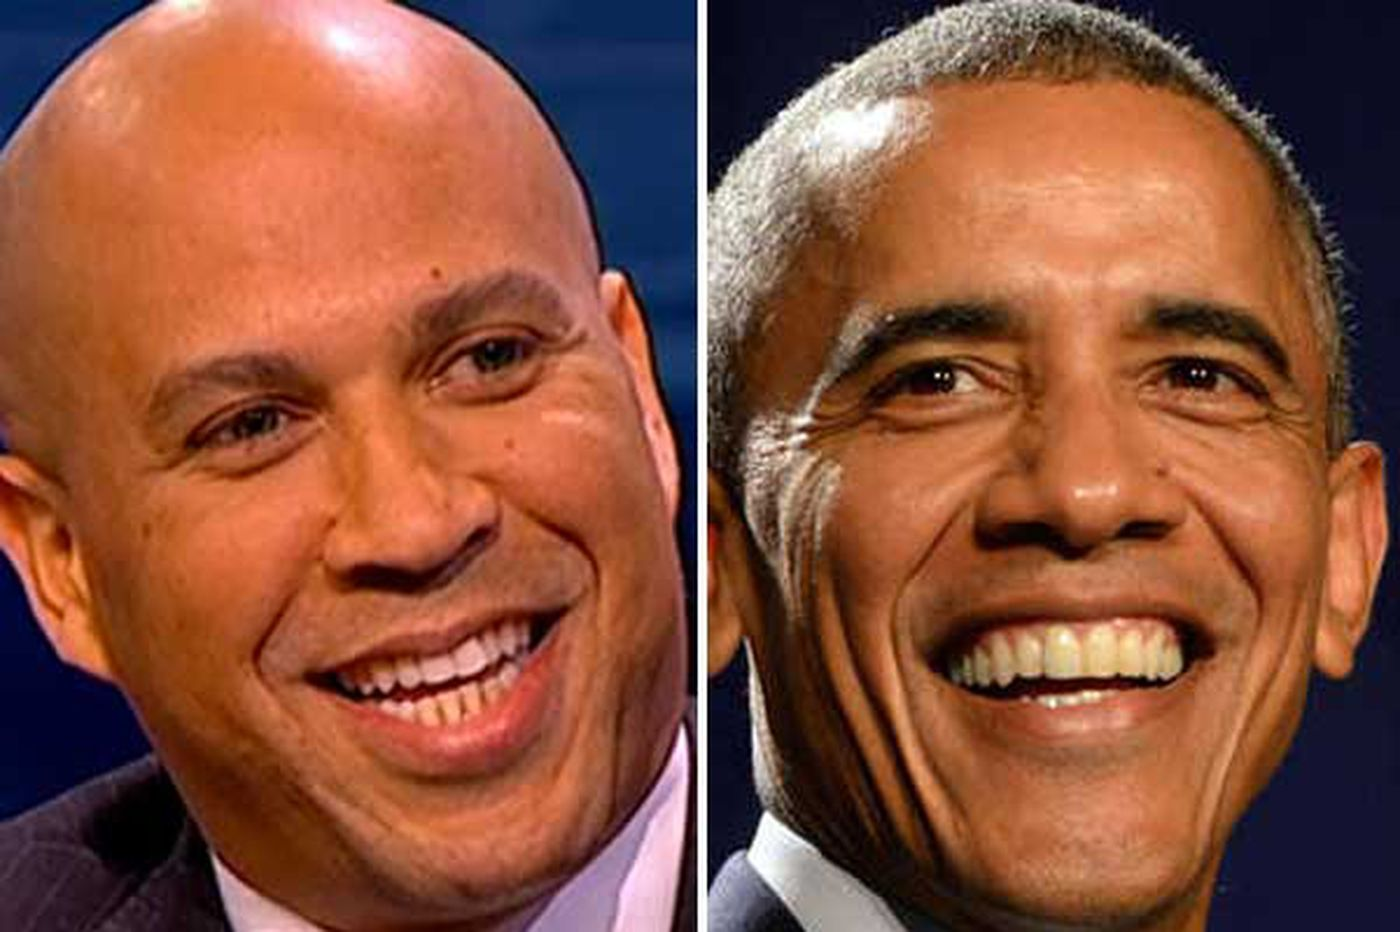 Philly420: Differing views on marijuana by Obama, Booker